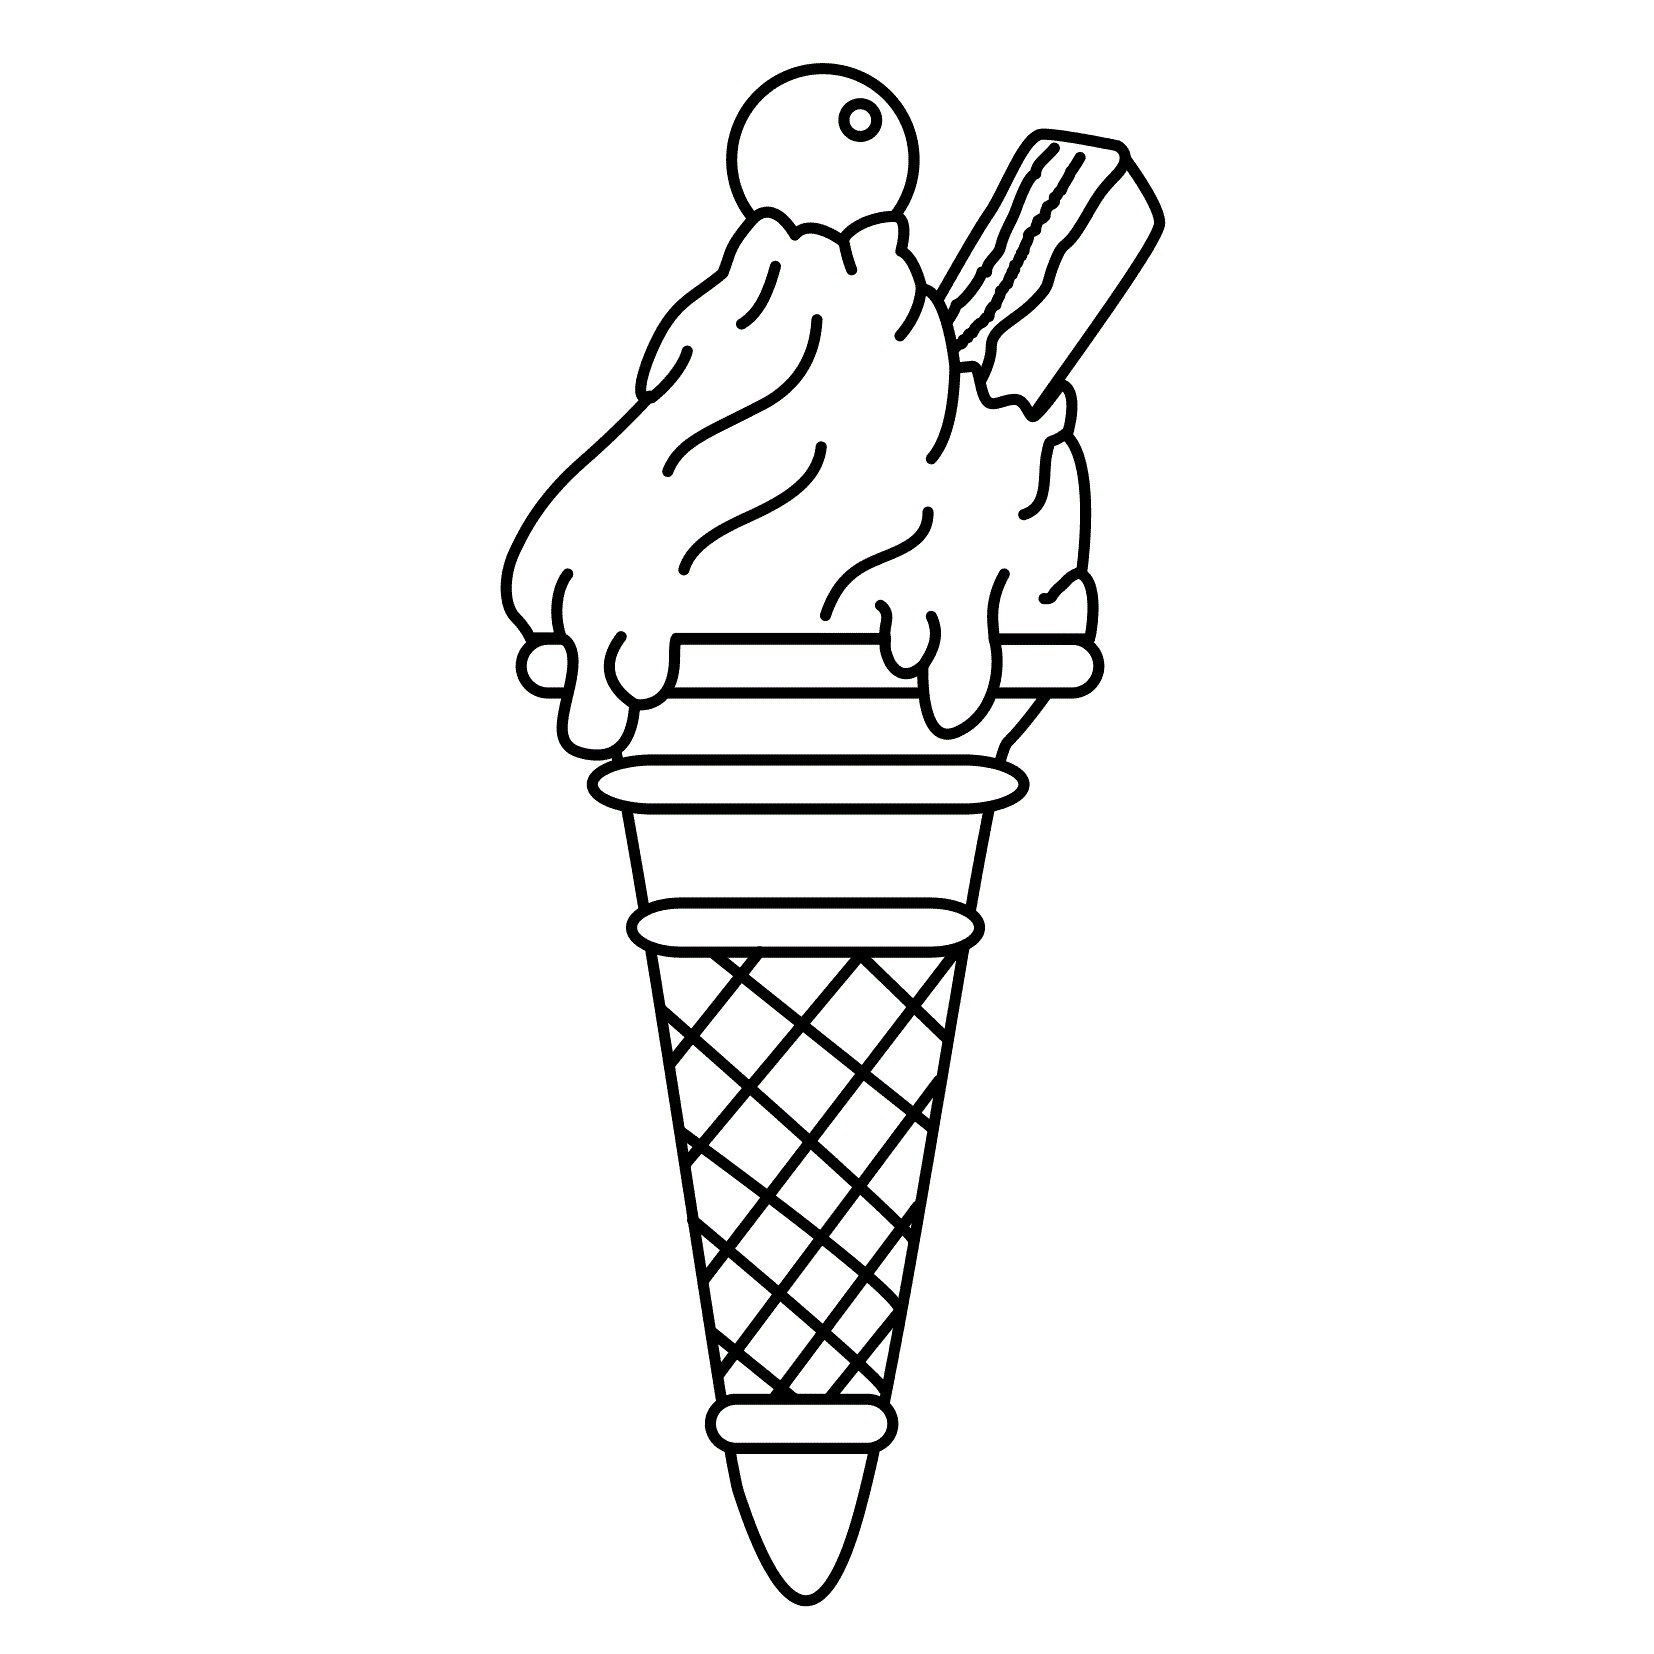 Free Printable Ice Cream Coloring Pages For Kids - Ice Cream Color Pages Printable Free